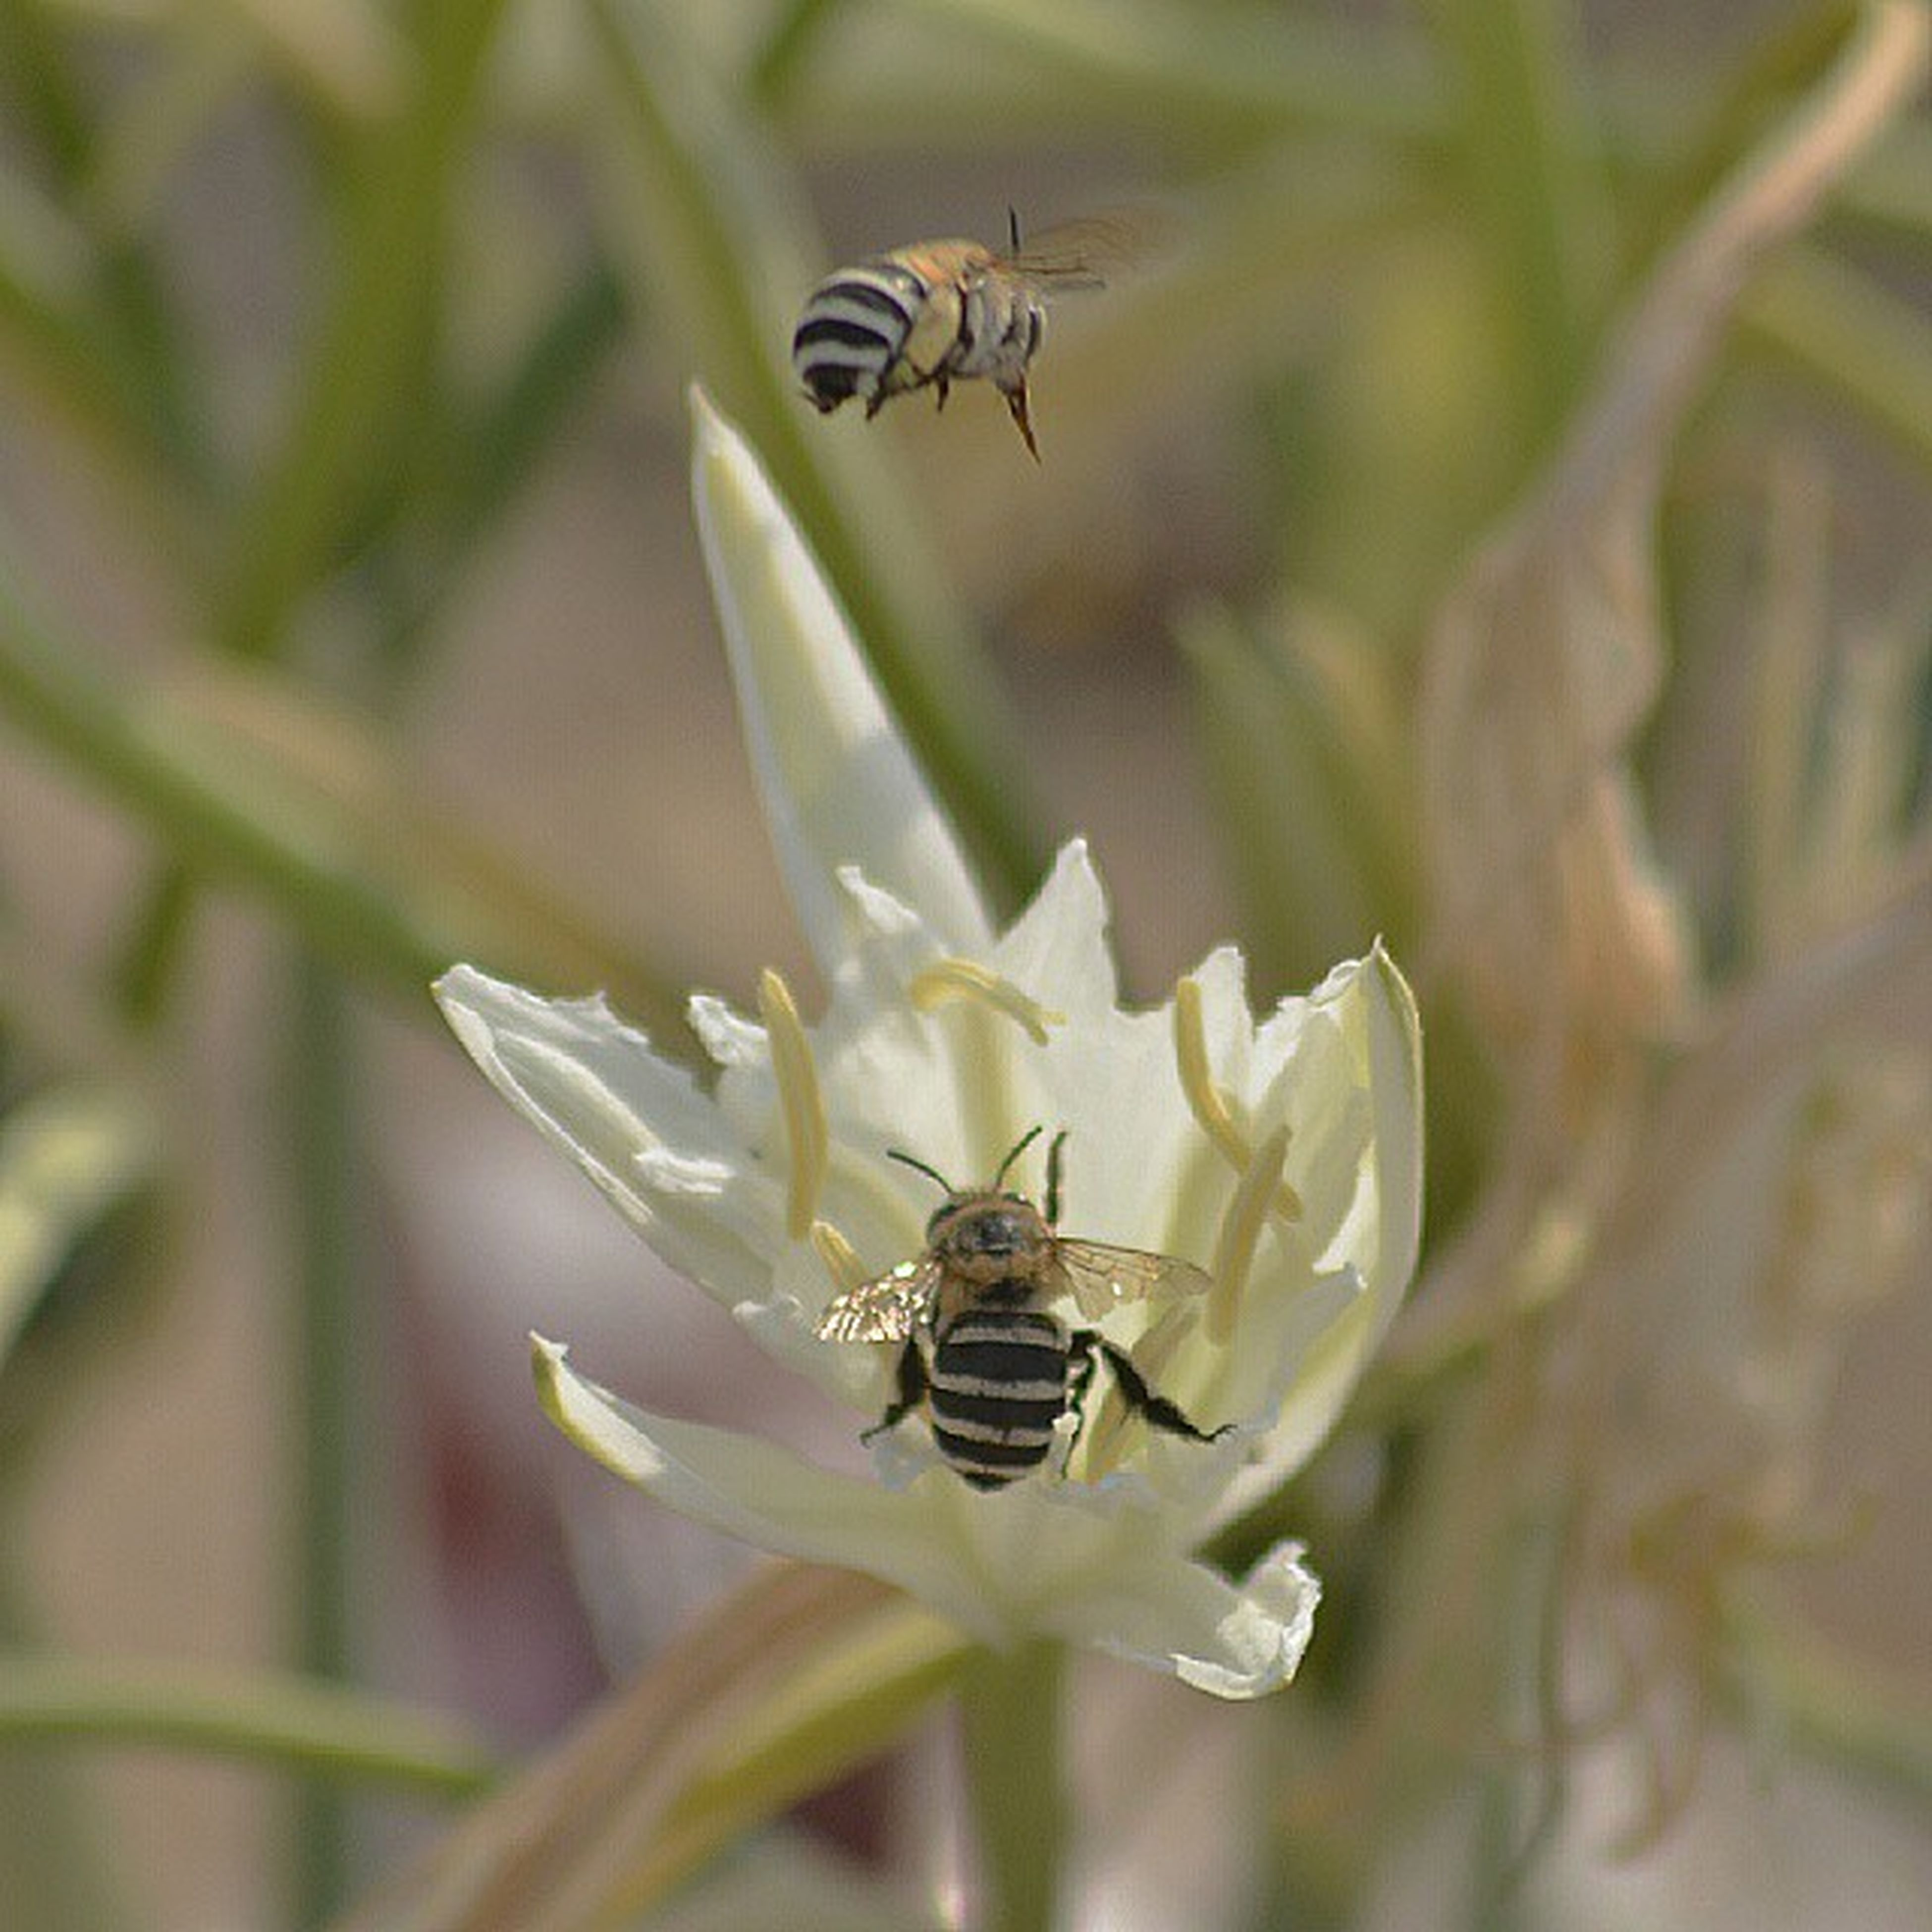 animal themes, animals in the wild, insect, wildlife, one animal, flower, flying, close-up, focus on foreground, nature, pollination, bee, two animals, selective focus, plant, beauty in nature, symbiotic relationship, zoology, growth, outdoors